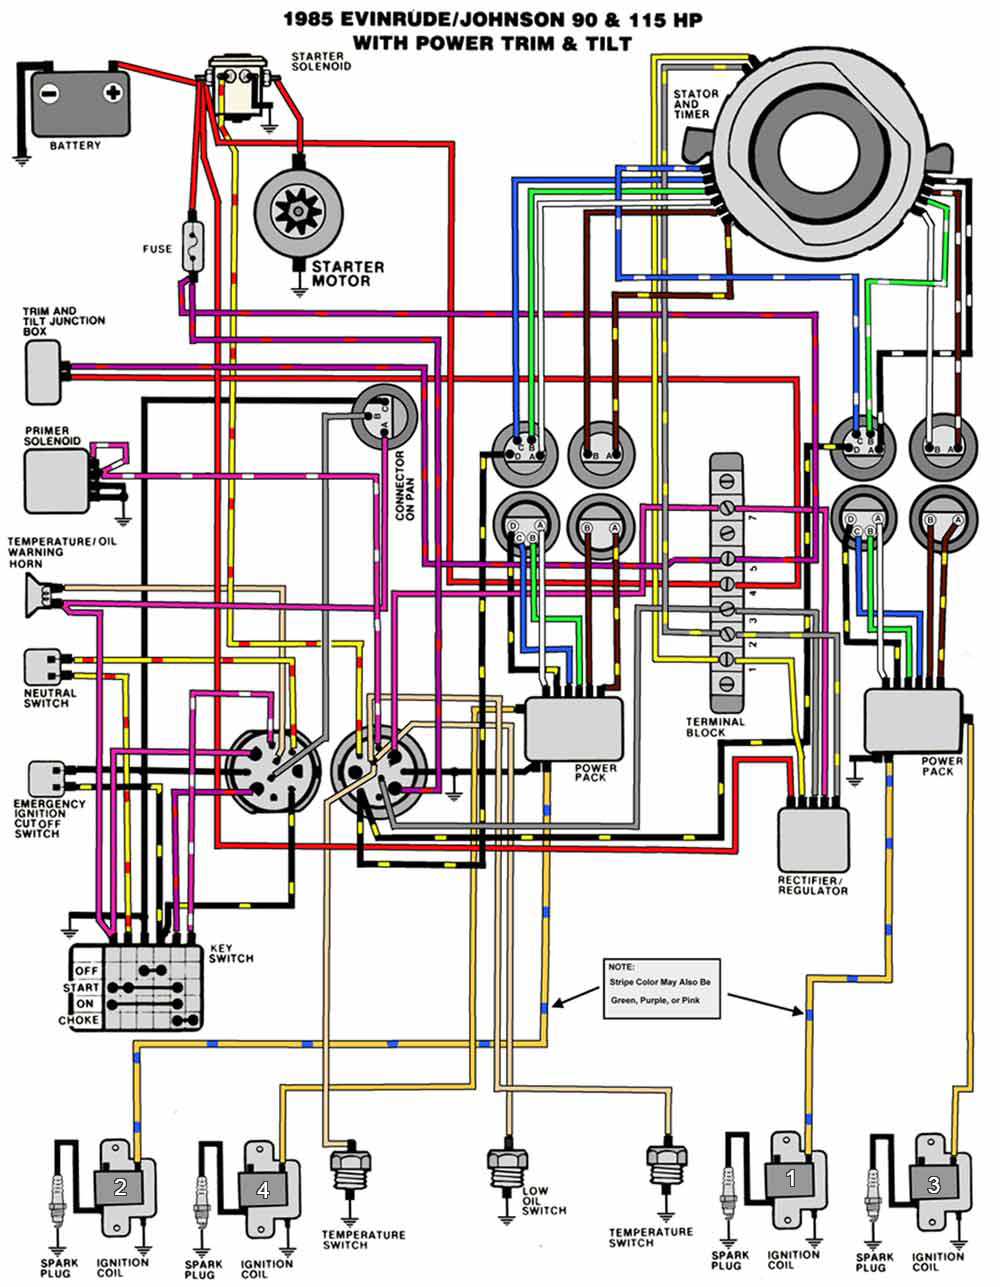 1985_90_115TnT evinrude etec wiring diagram evinrude e tec wire color \u2022 wiring wiring diagram for johnson outboard motor at mifinder.co